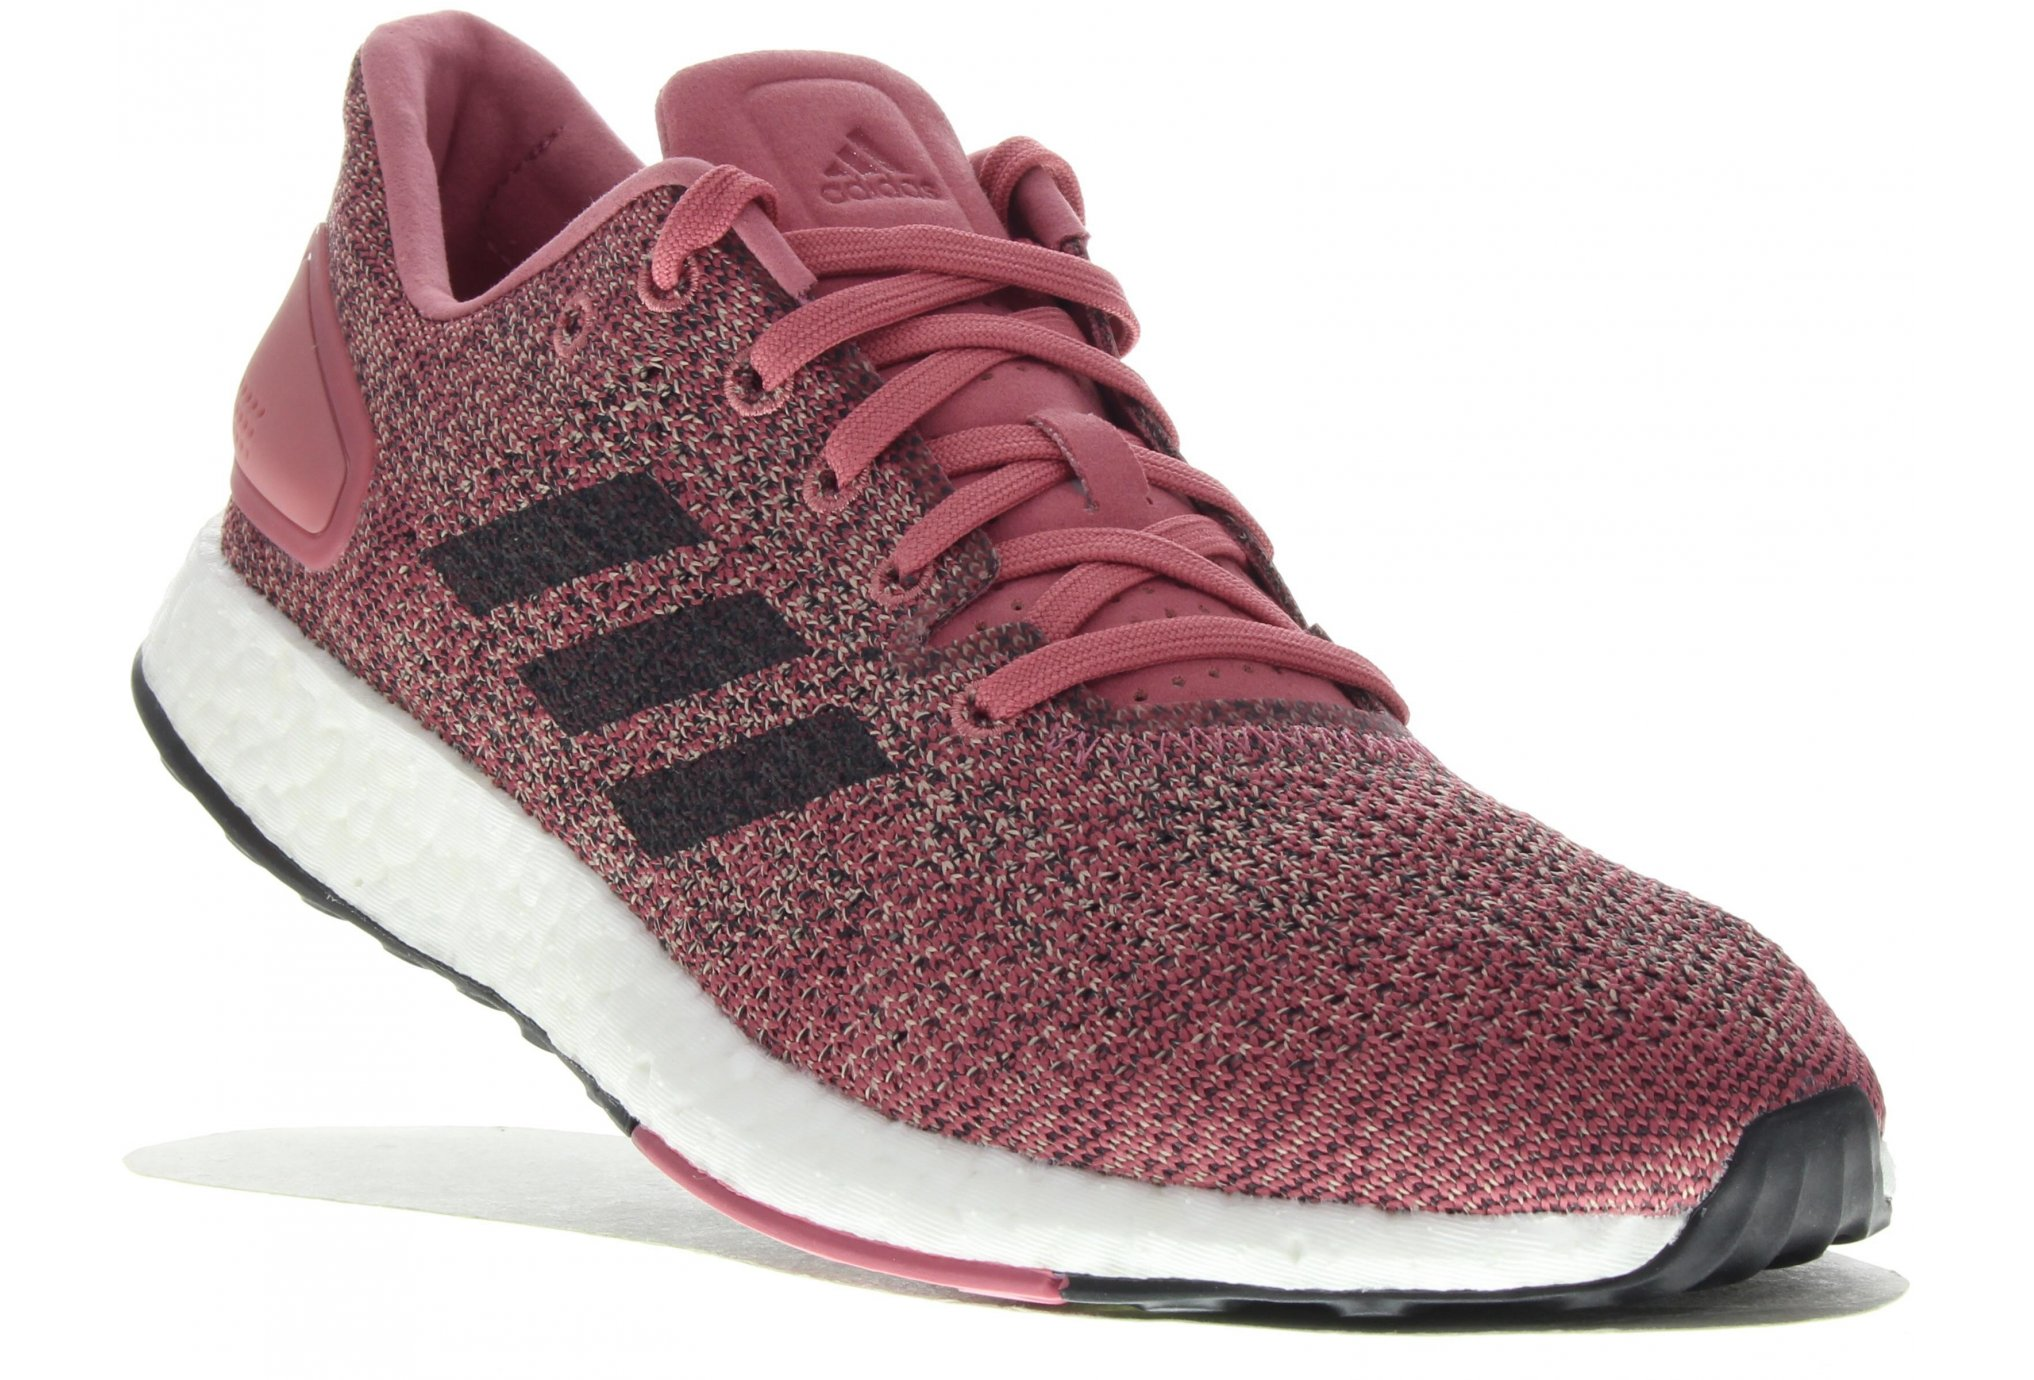 low priced 7aac5 f9ceb adidas Pure Boost DPR